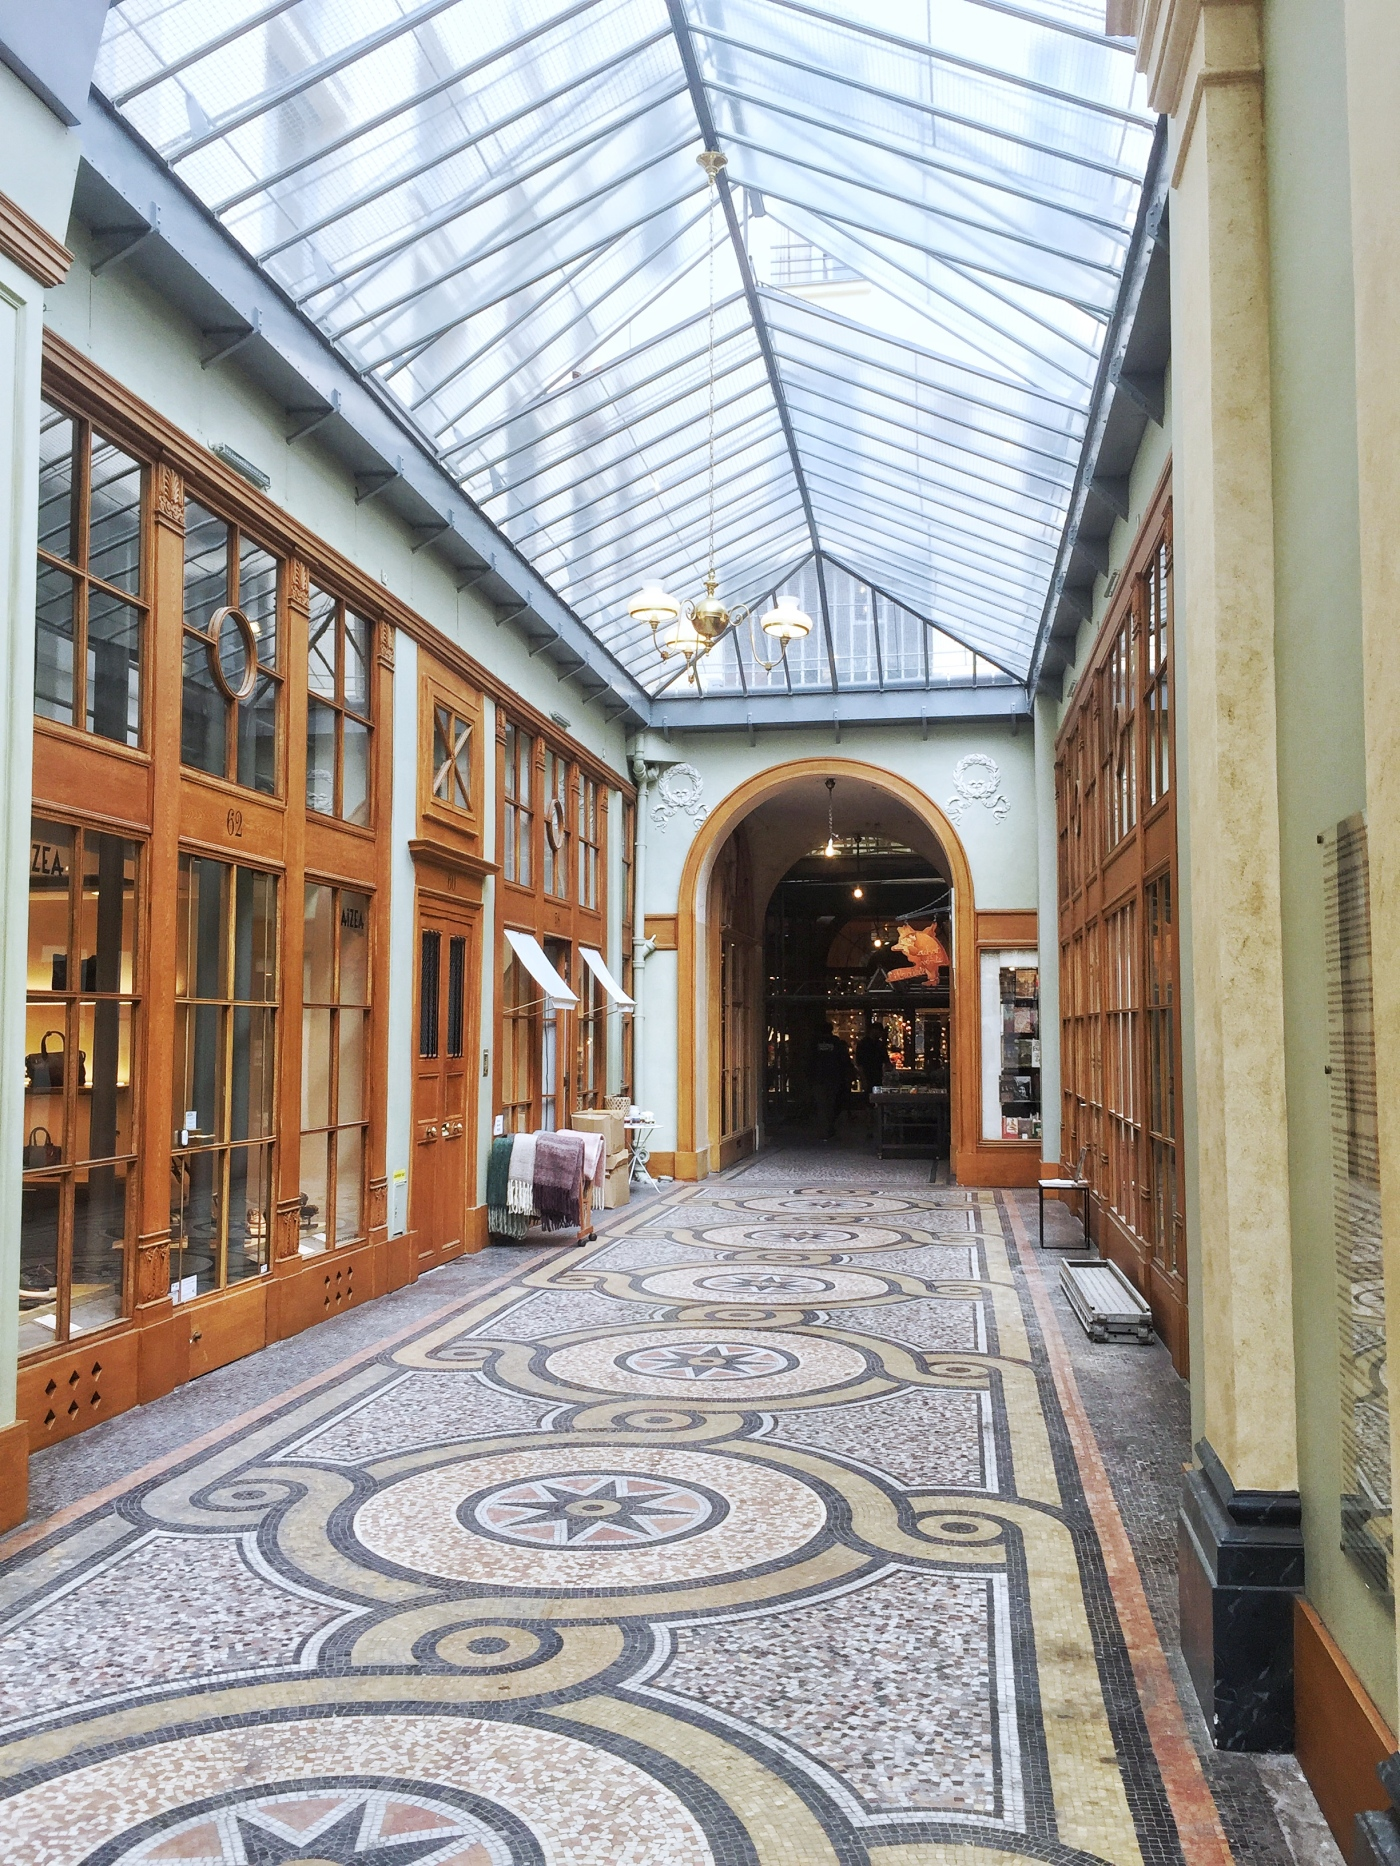 Galerie Vivienne passages couverts places to see in Paris 2